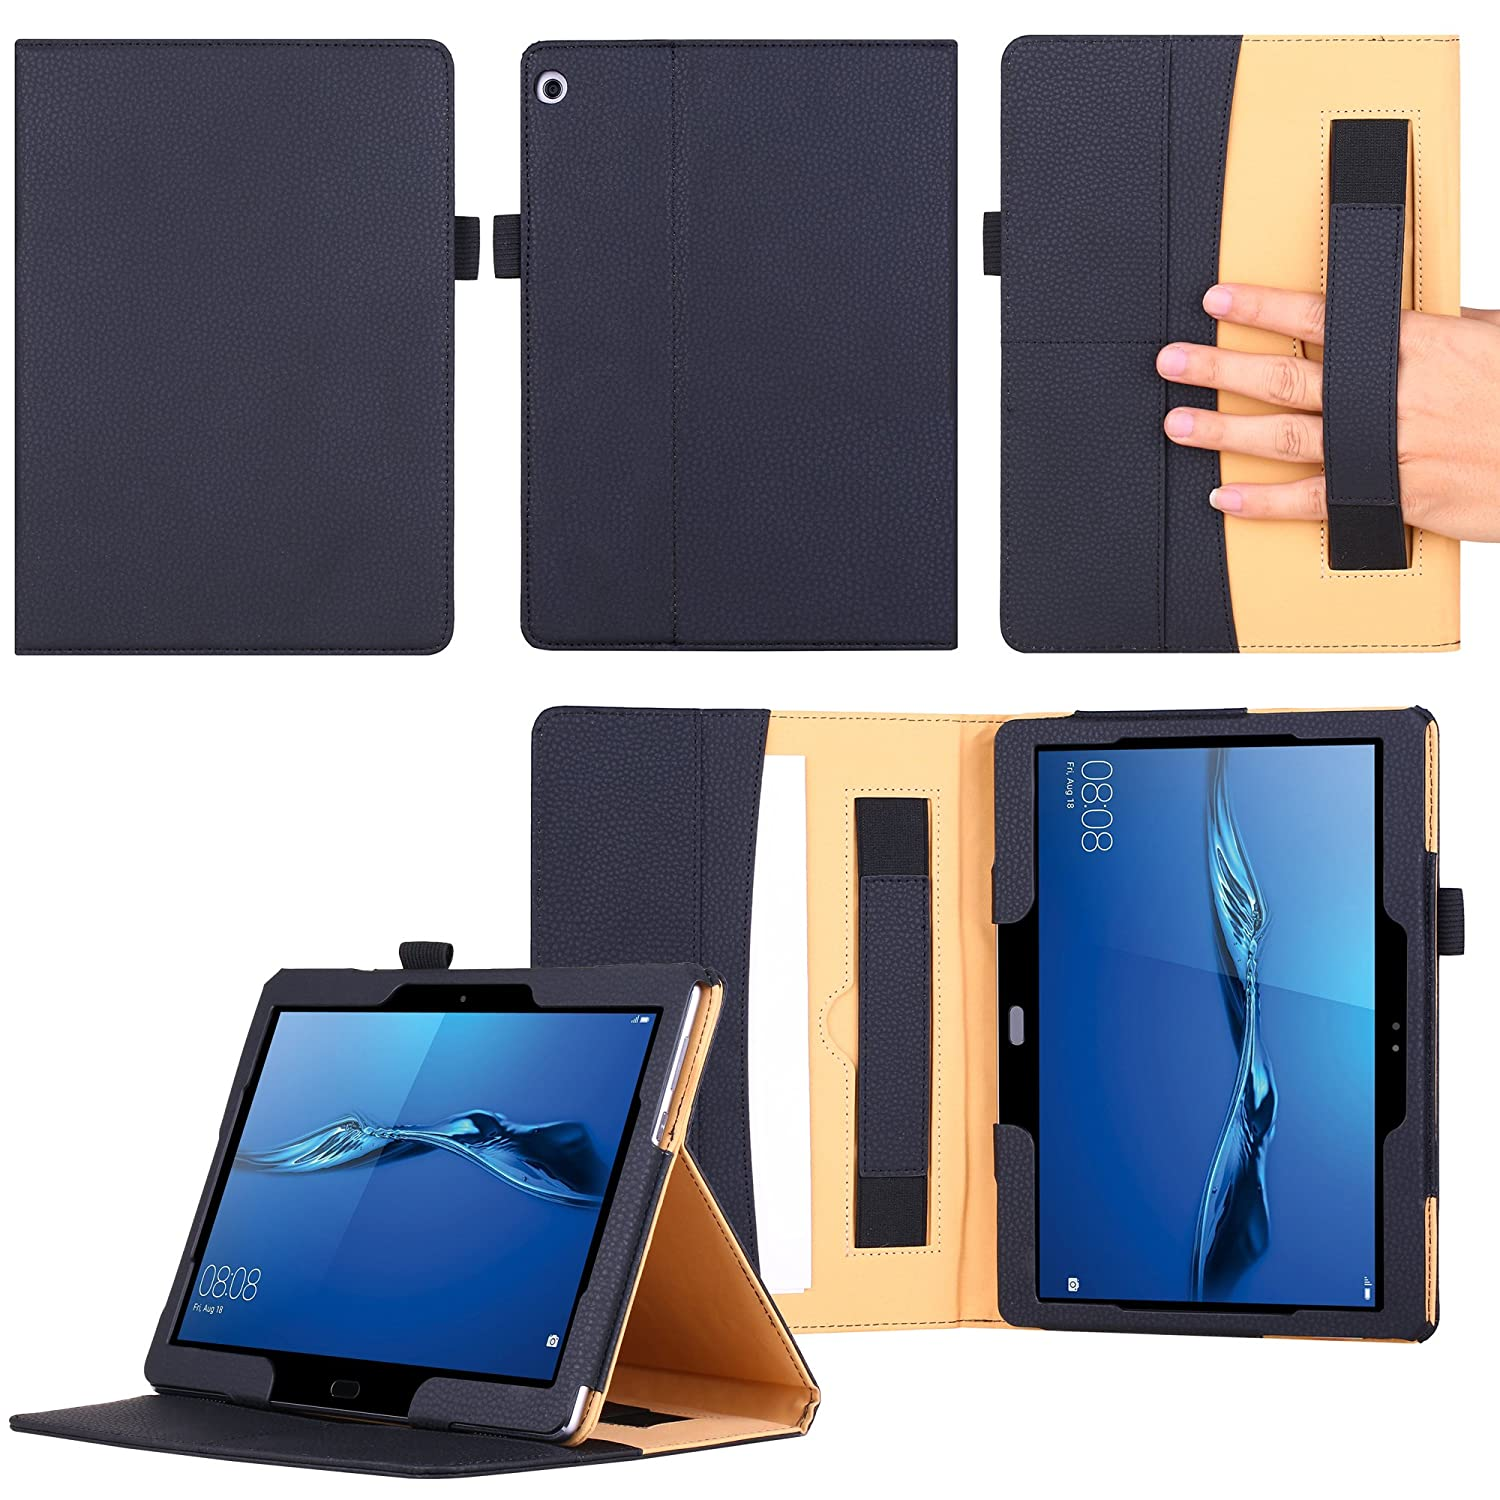 new product 1d313 bb2c2 Huawei MediaPad M3 Lite 10 Case,VOVIPO Premium Leather Cover Stand  Protective Folio Case For Huawei MediaPad M3 Lite 10 With Handstrap And  Cornor ...